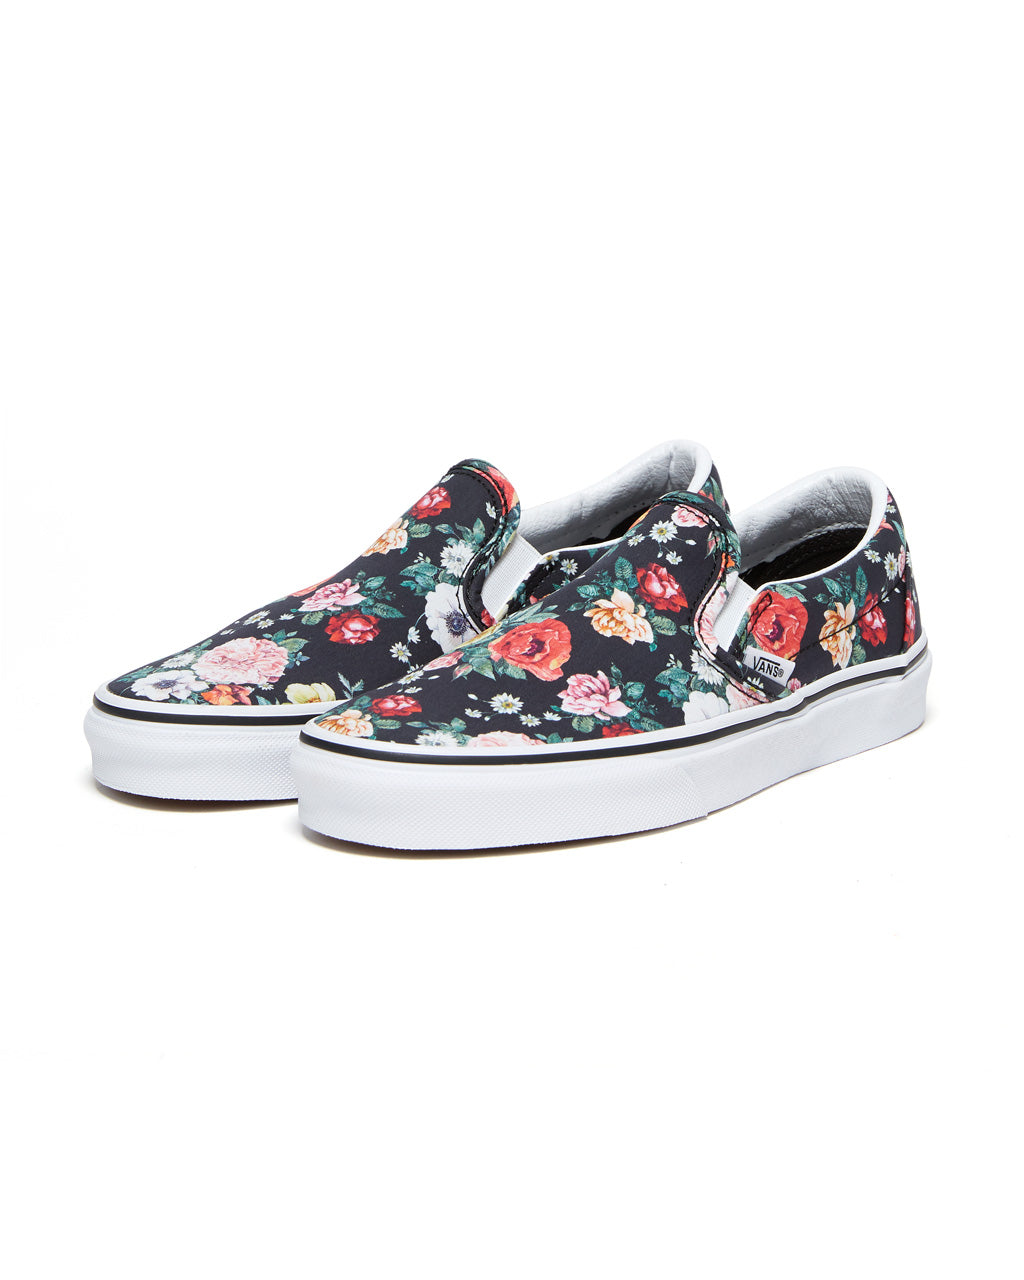 Vans classic slip on in a garden floral.